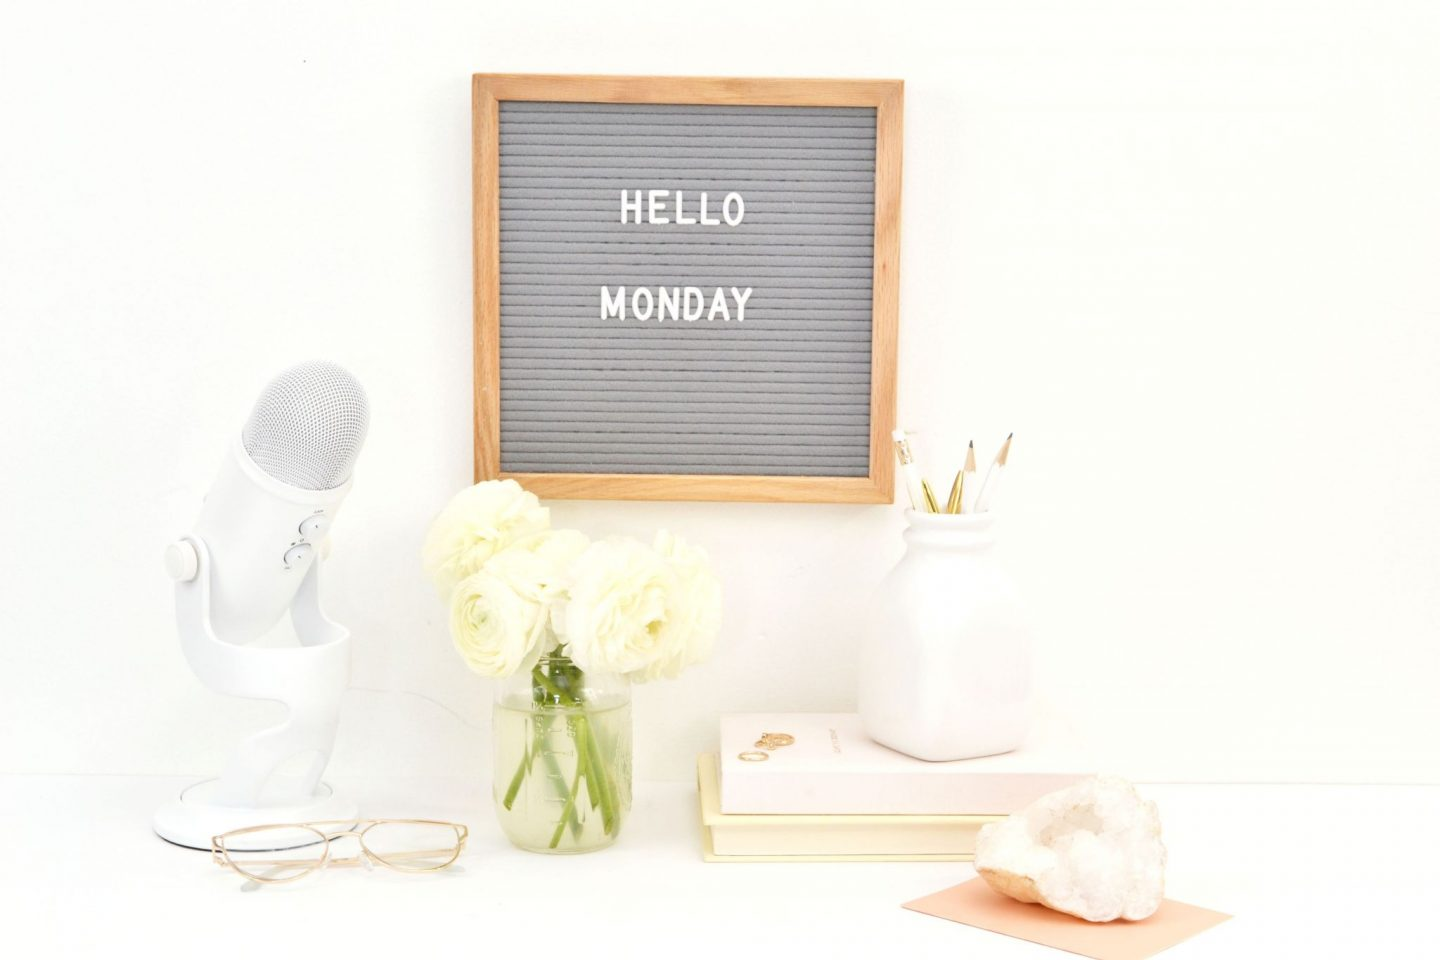 Letter board with hello Monday written